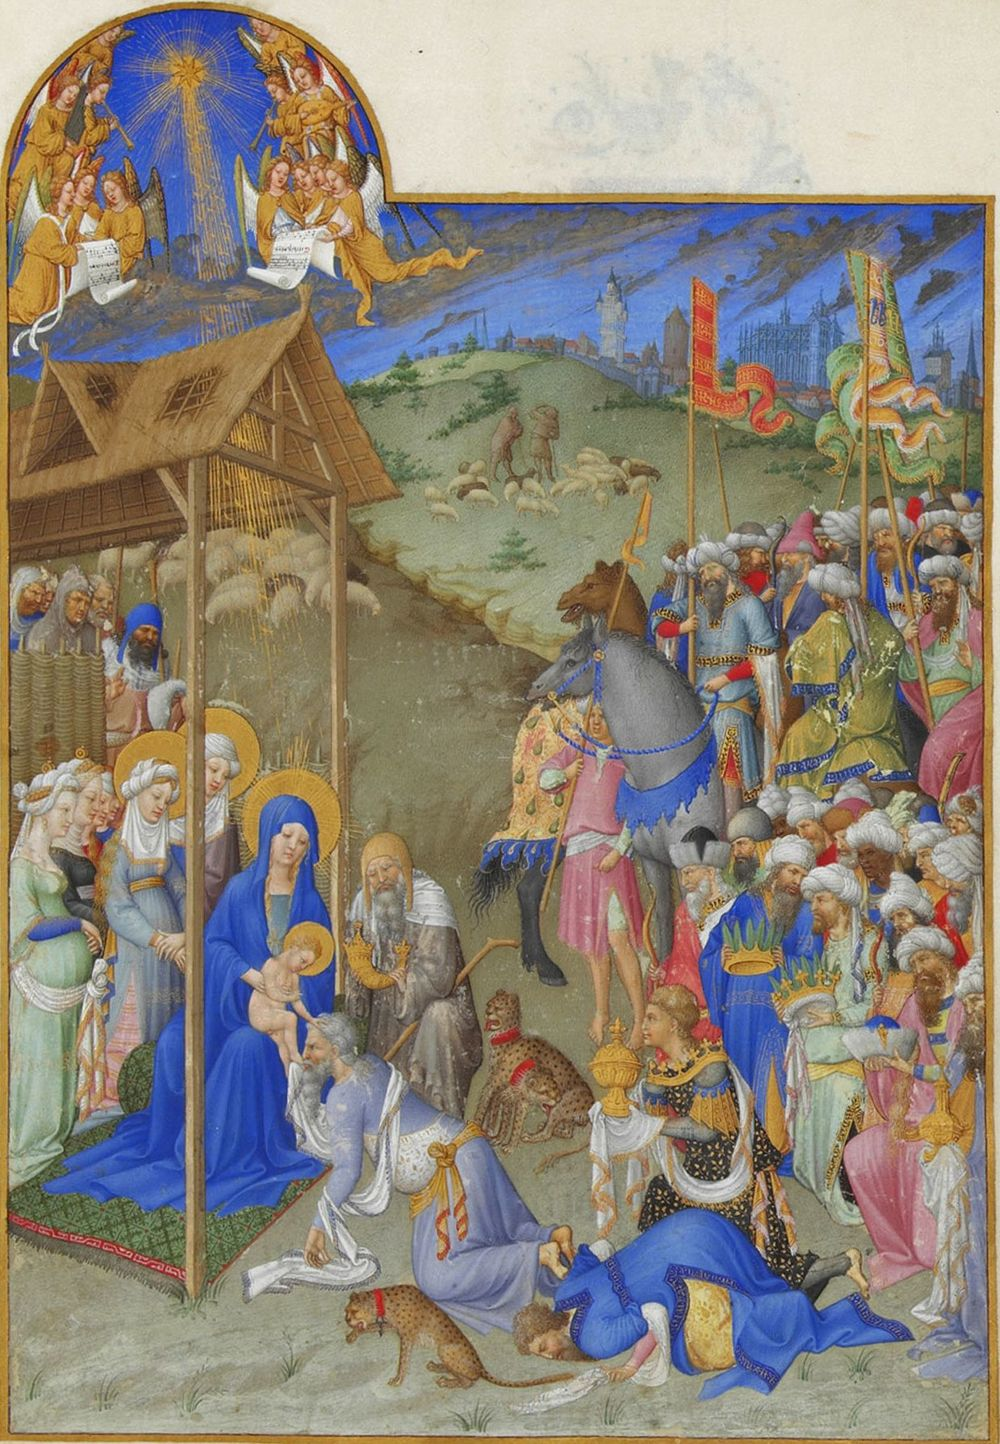 Folio_52r_-_The_Adoration_of_the_Magi.jpg